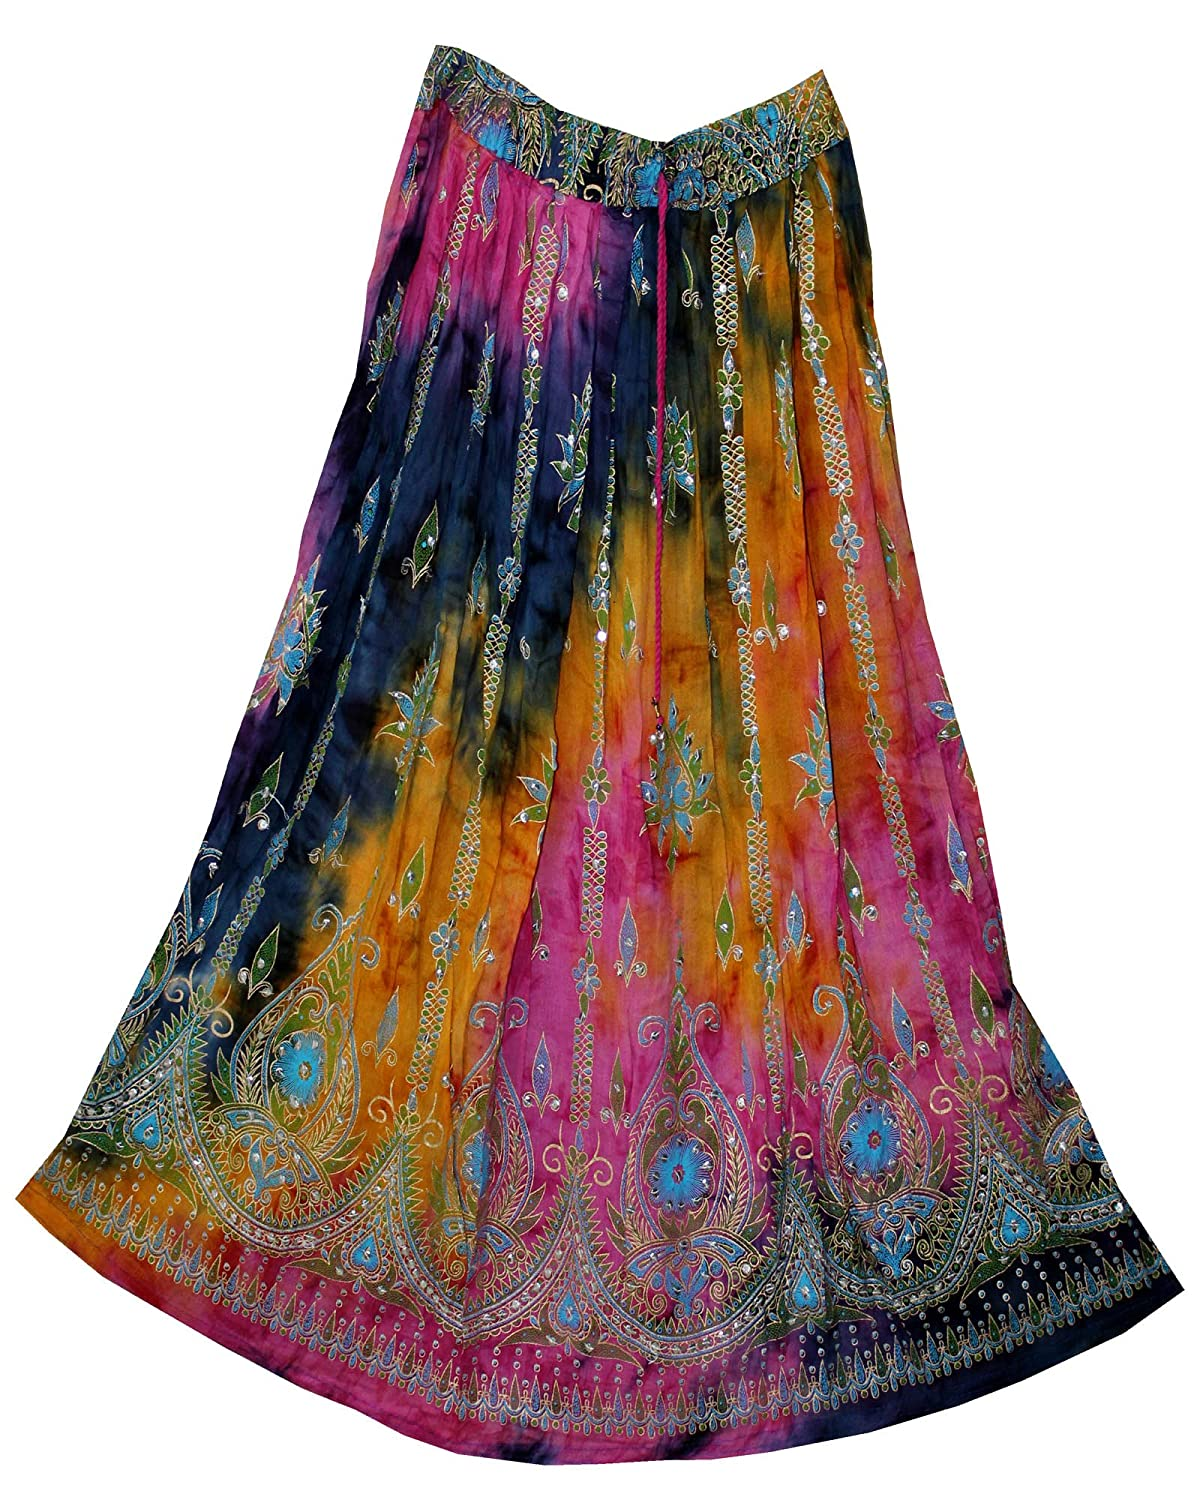 FOI Rayon Skirt Indian Hippie Rock Gypsy Jupe Retro Boho Falda Women Ethnic FOI 13658